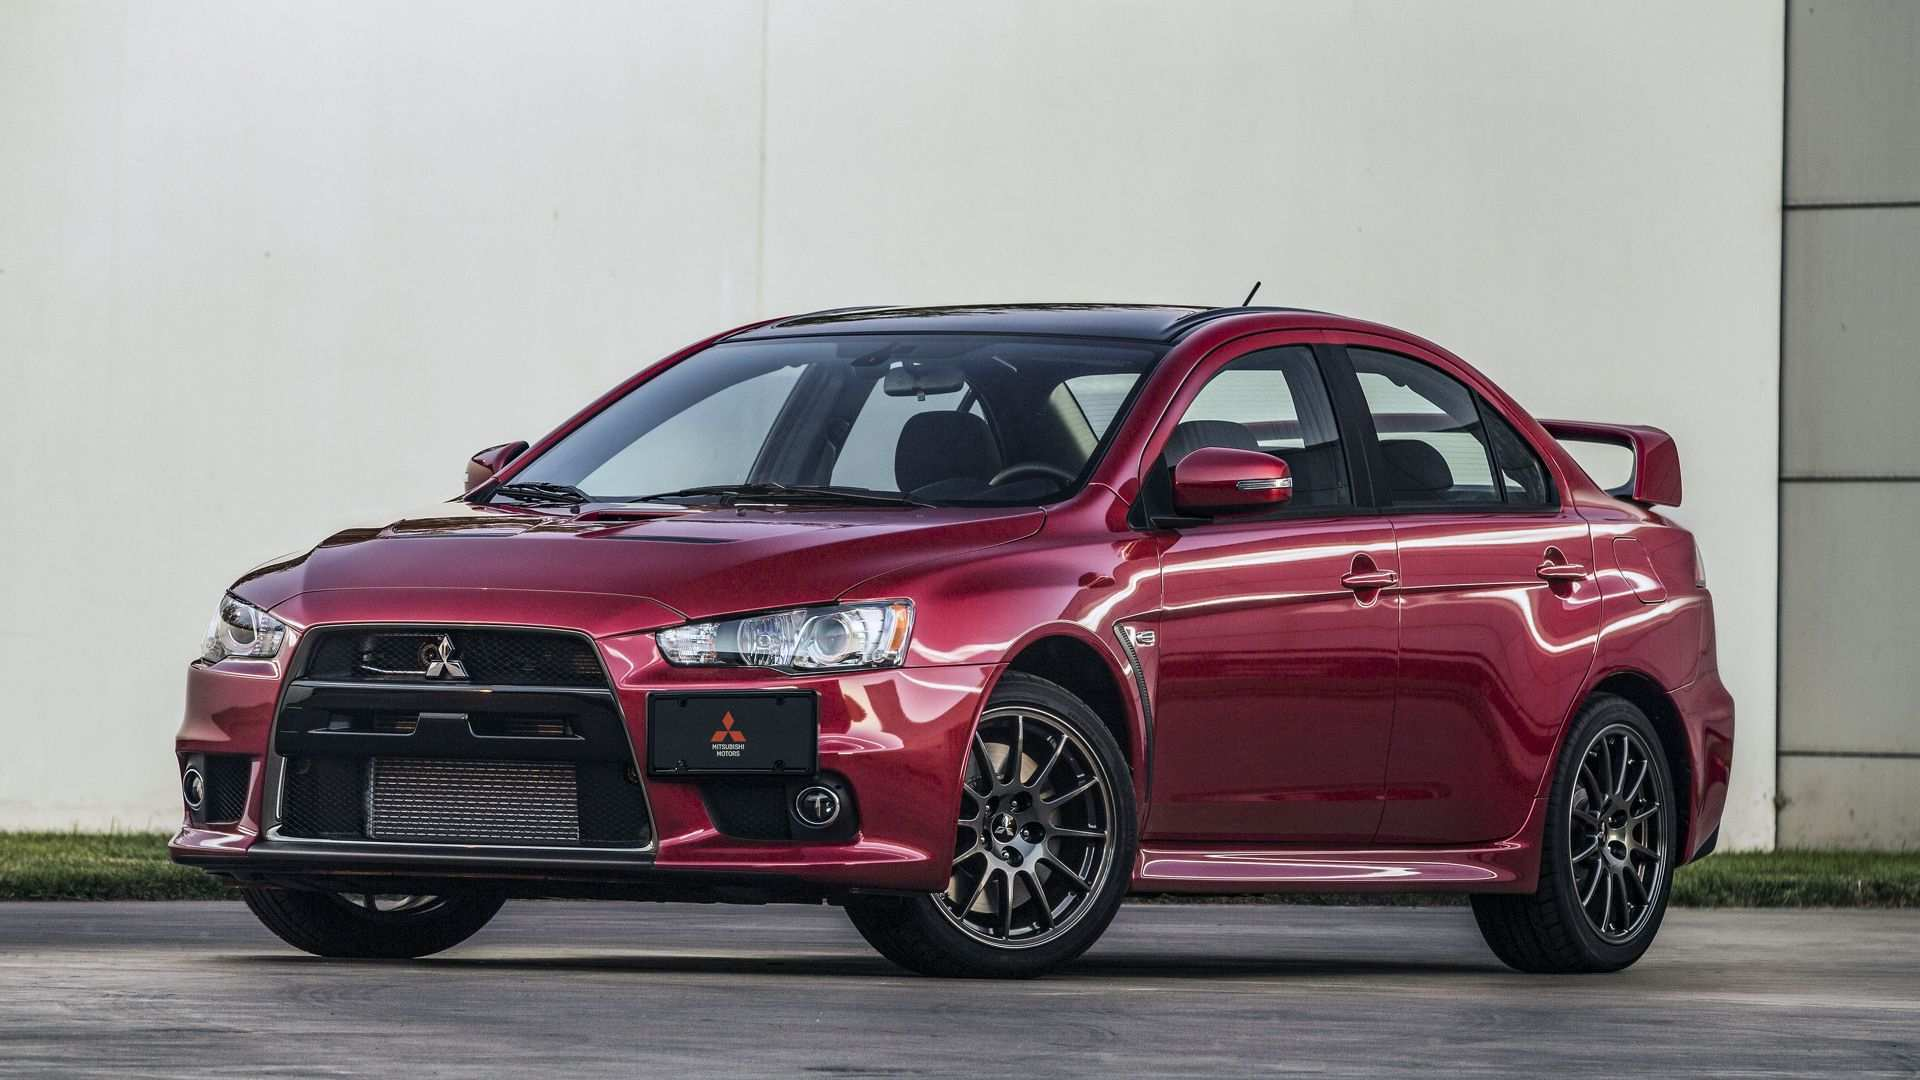 56 Gallery of 2020 Mitsubishi EVO XI Pricing with 2020 Mitsubishi EVO XI